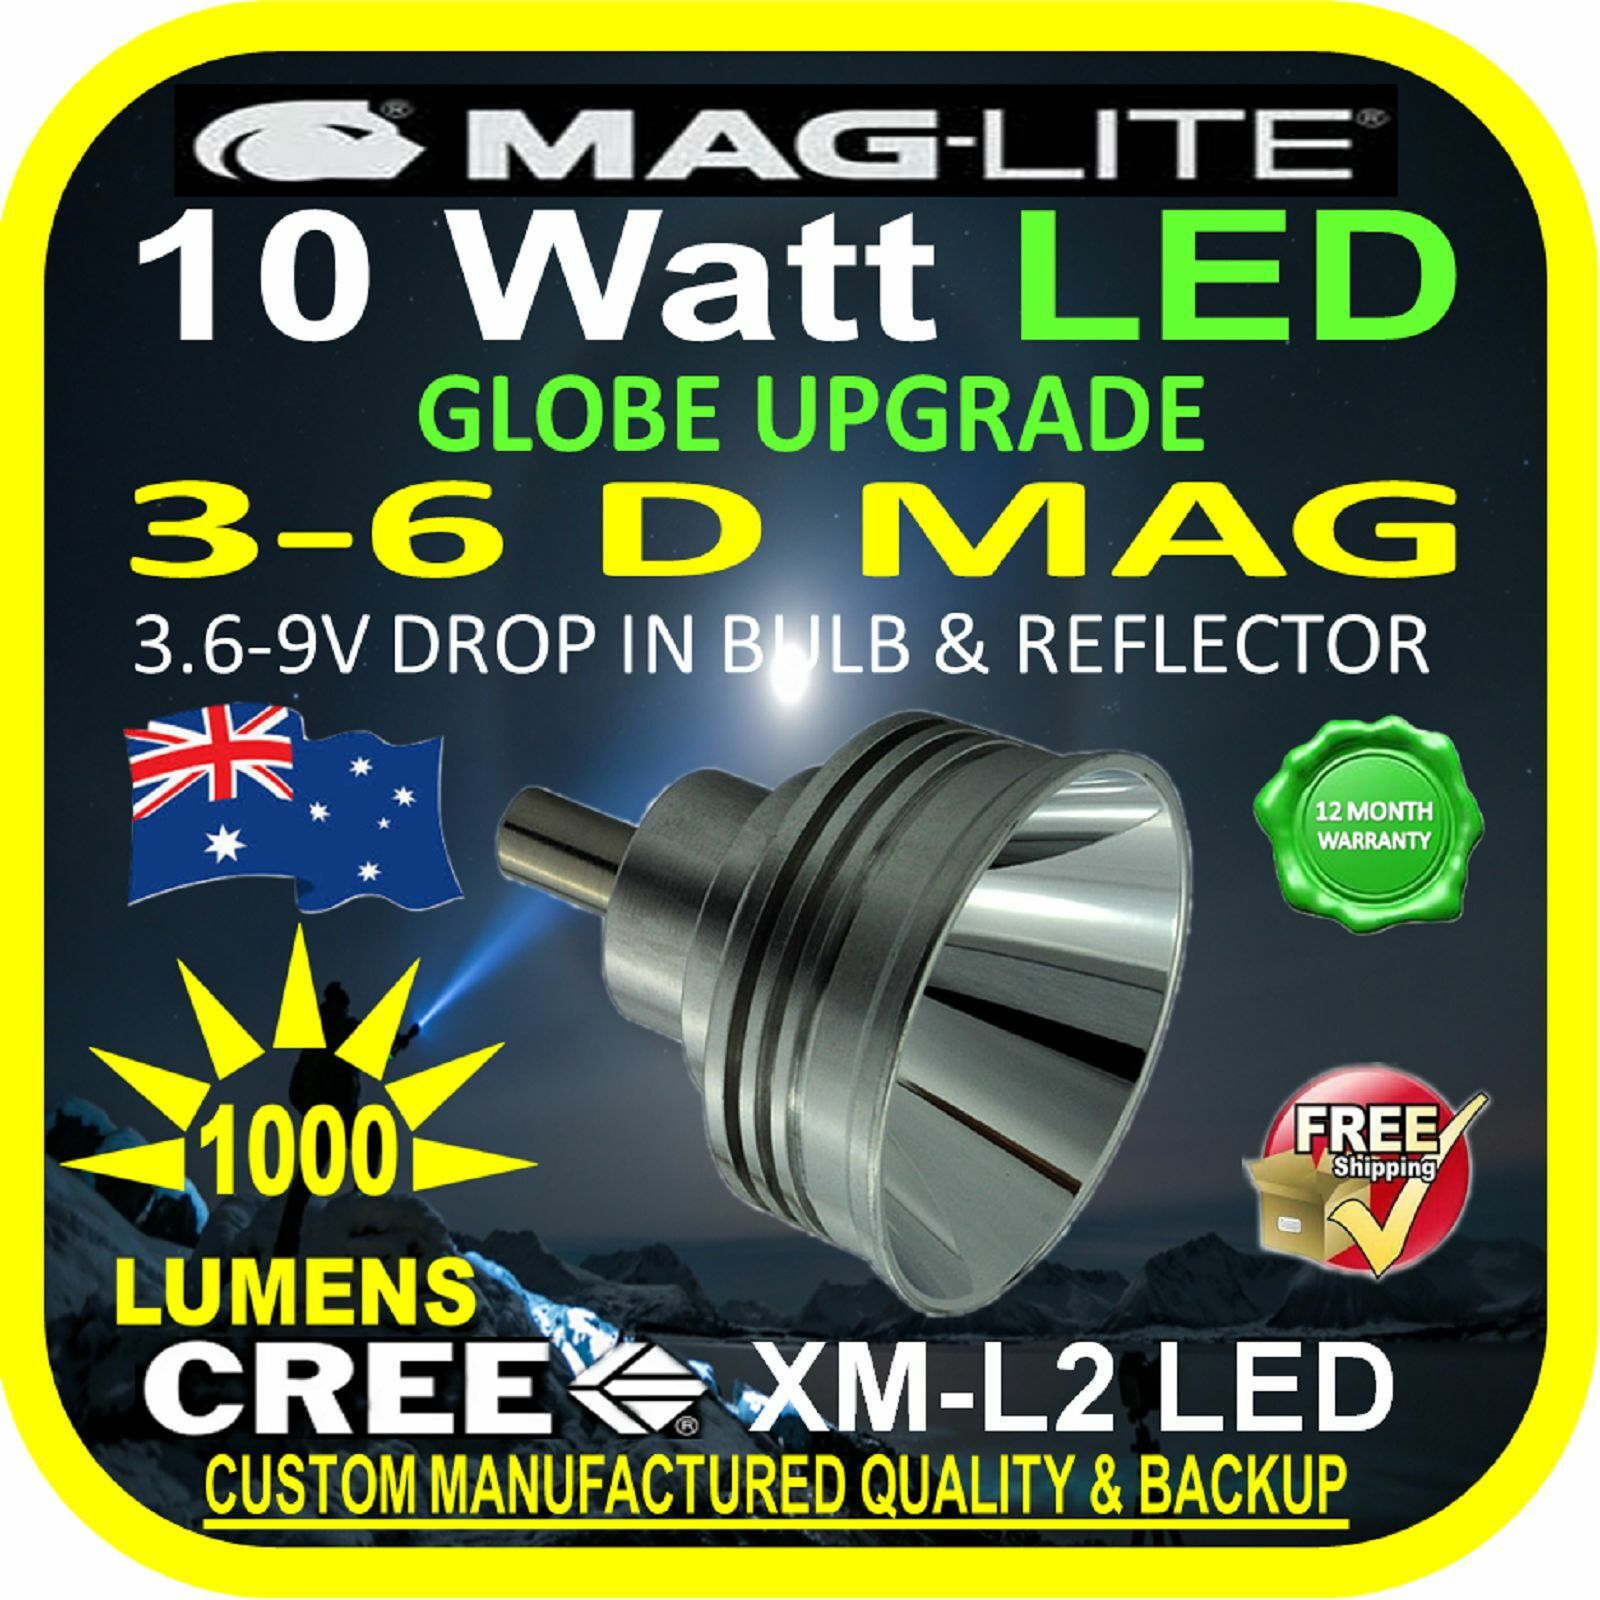 MAGLITE UPGRADE LED 3-6 D CREE 10W BULB GLOBE for TORCH FLAS